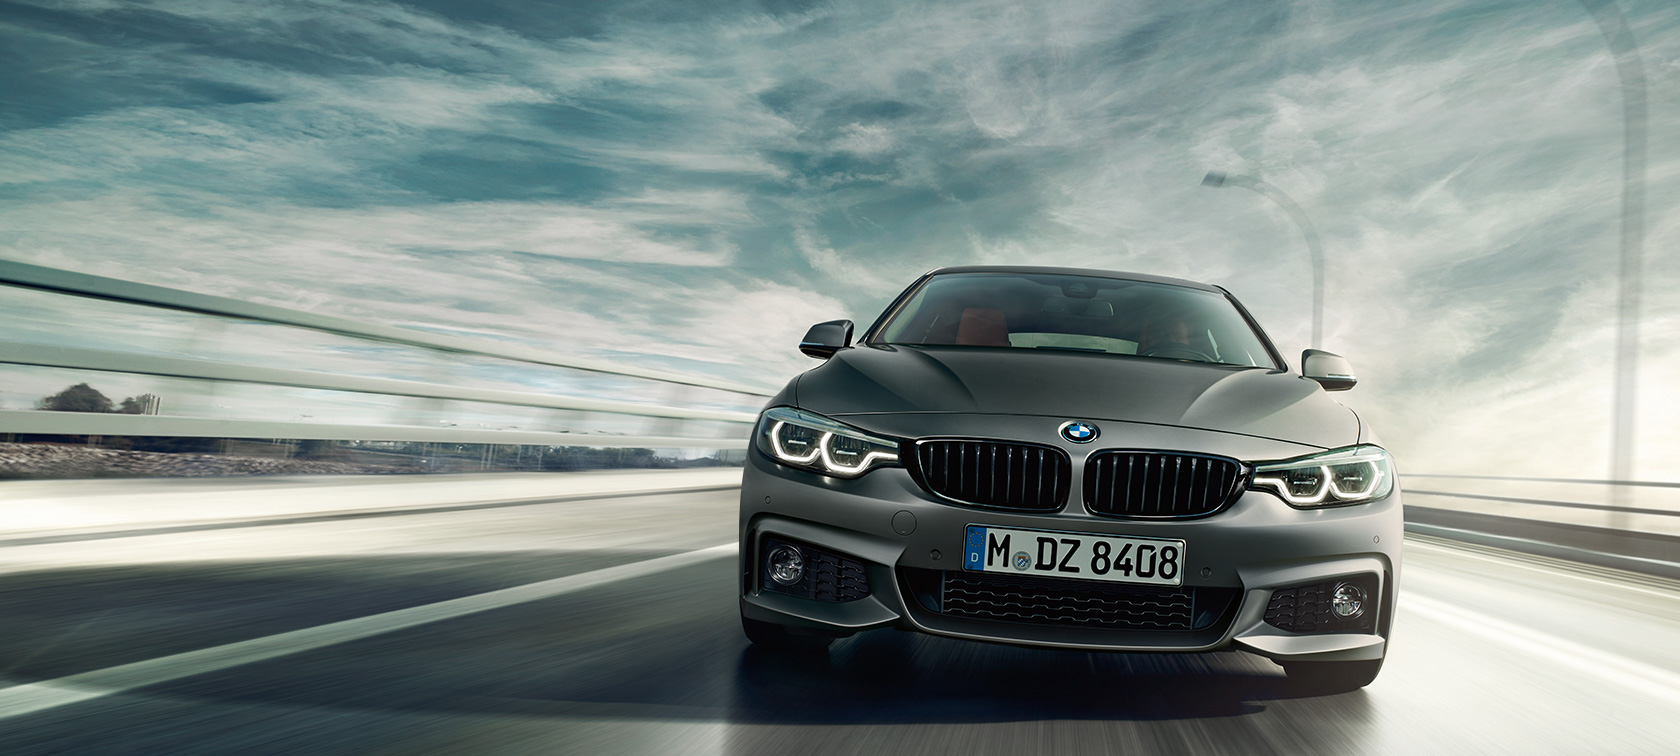 Bmw 4 Series Gran Coupe More Dynamic Agile And Comfortable Bmw Hk